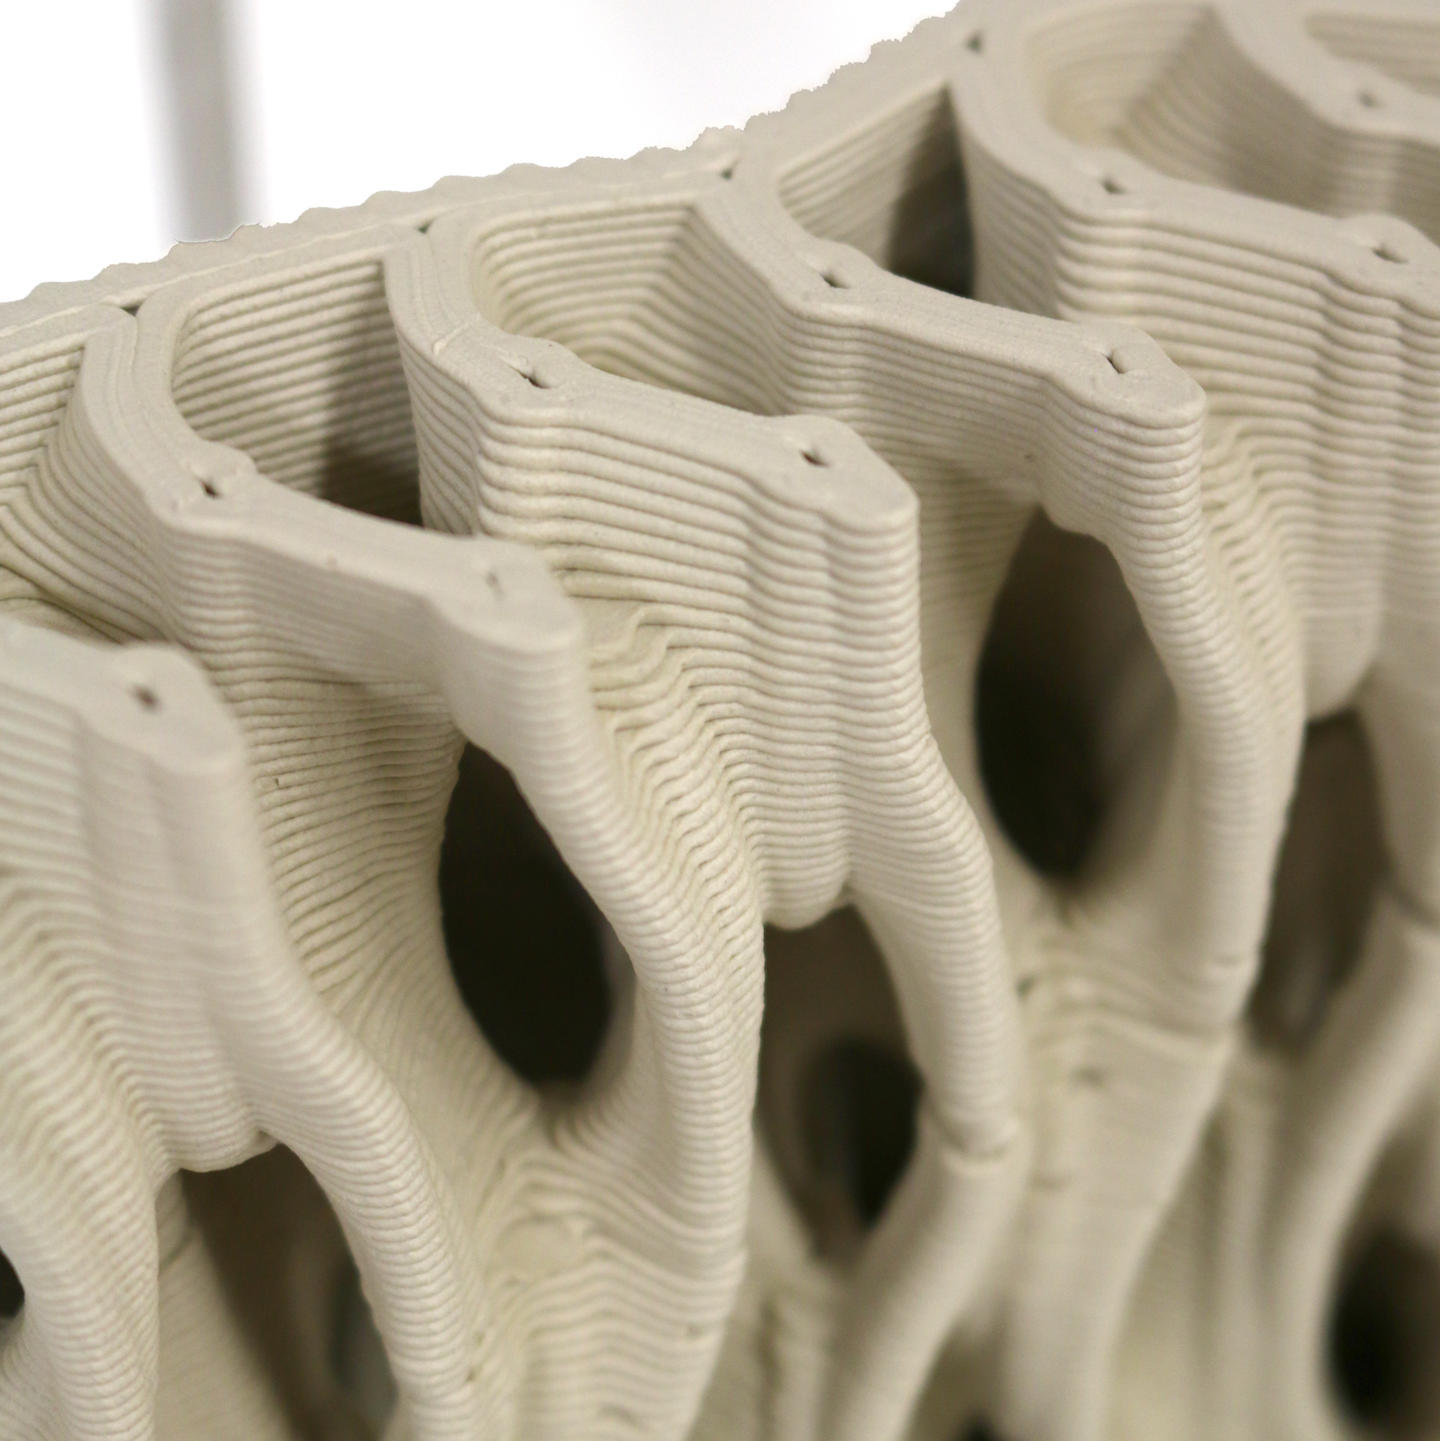 3d printed ceramic form